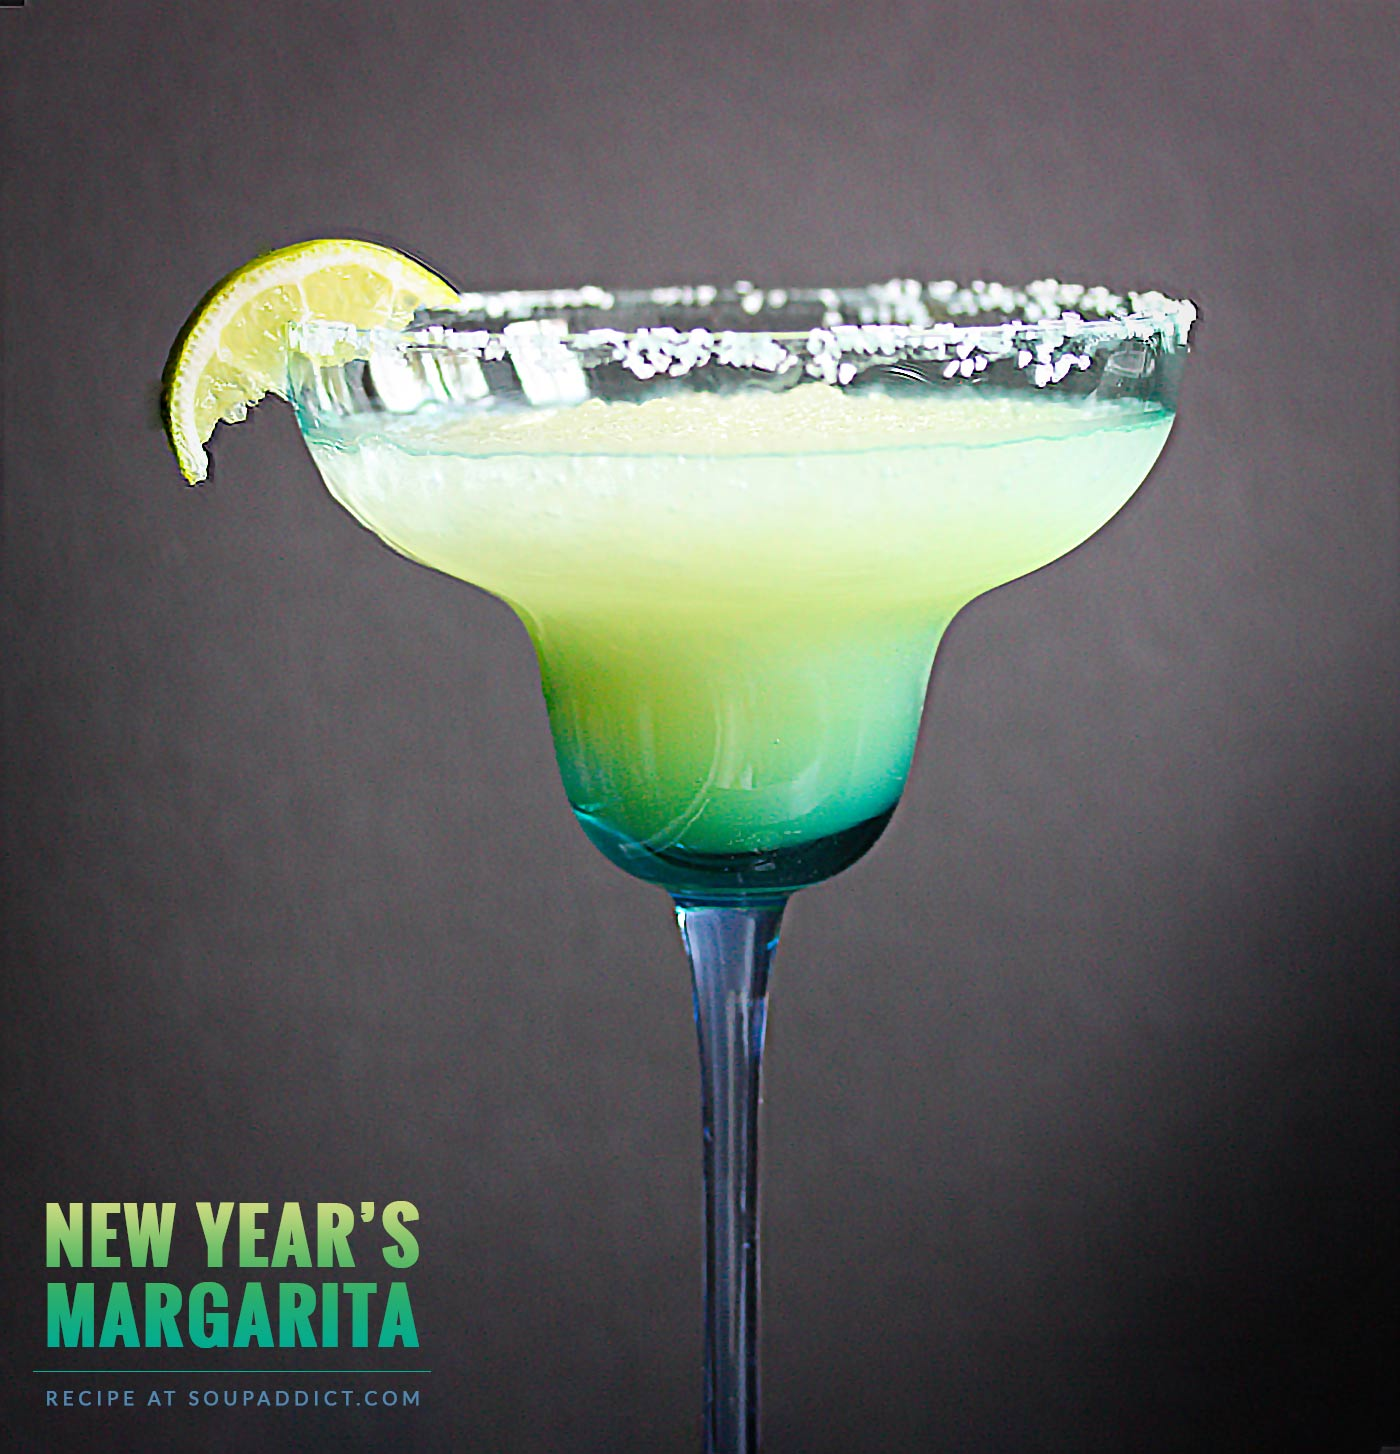 New Year's Margarita - Recipe at SoupAddict.com